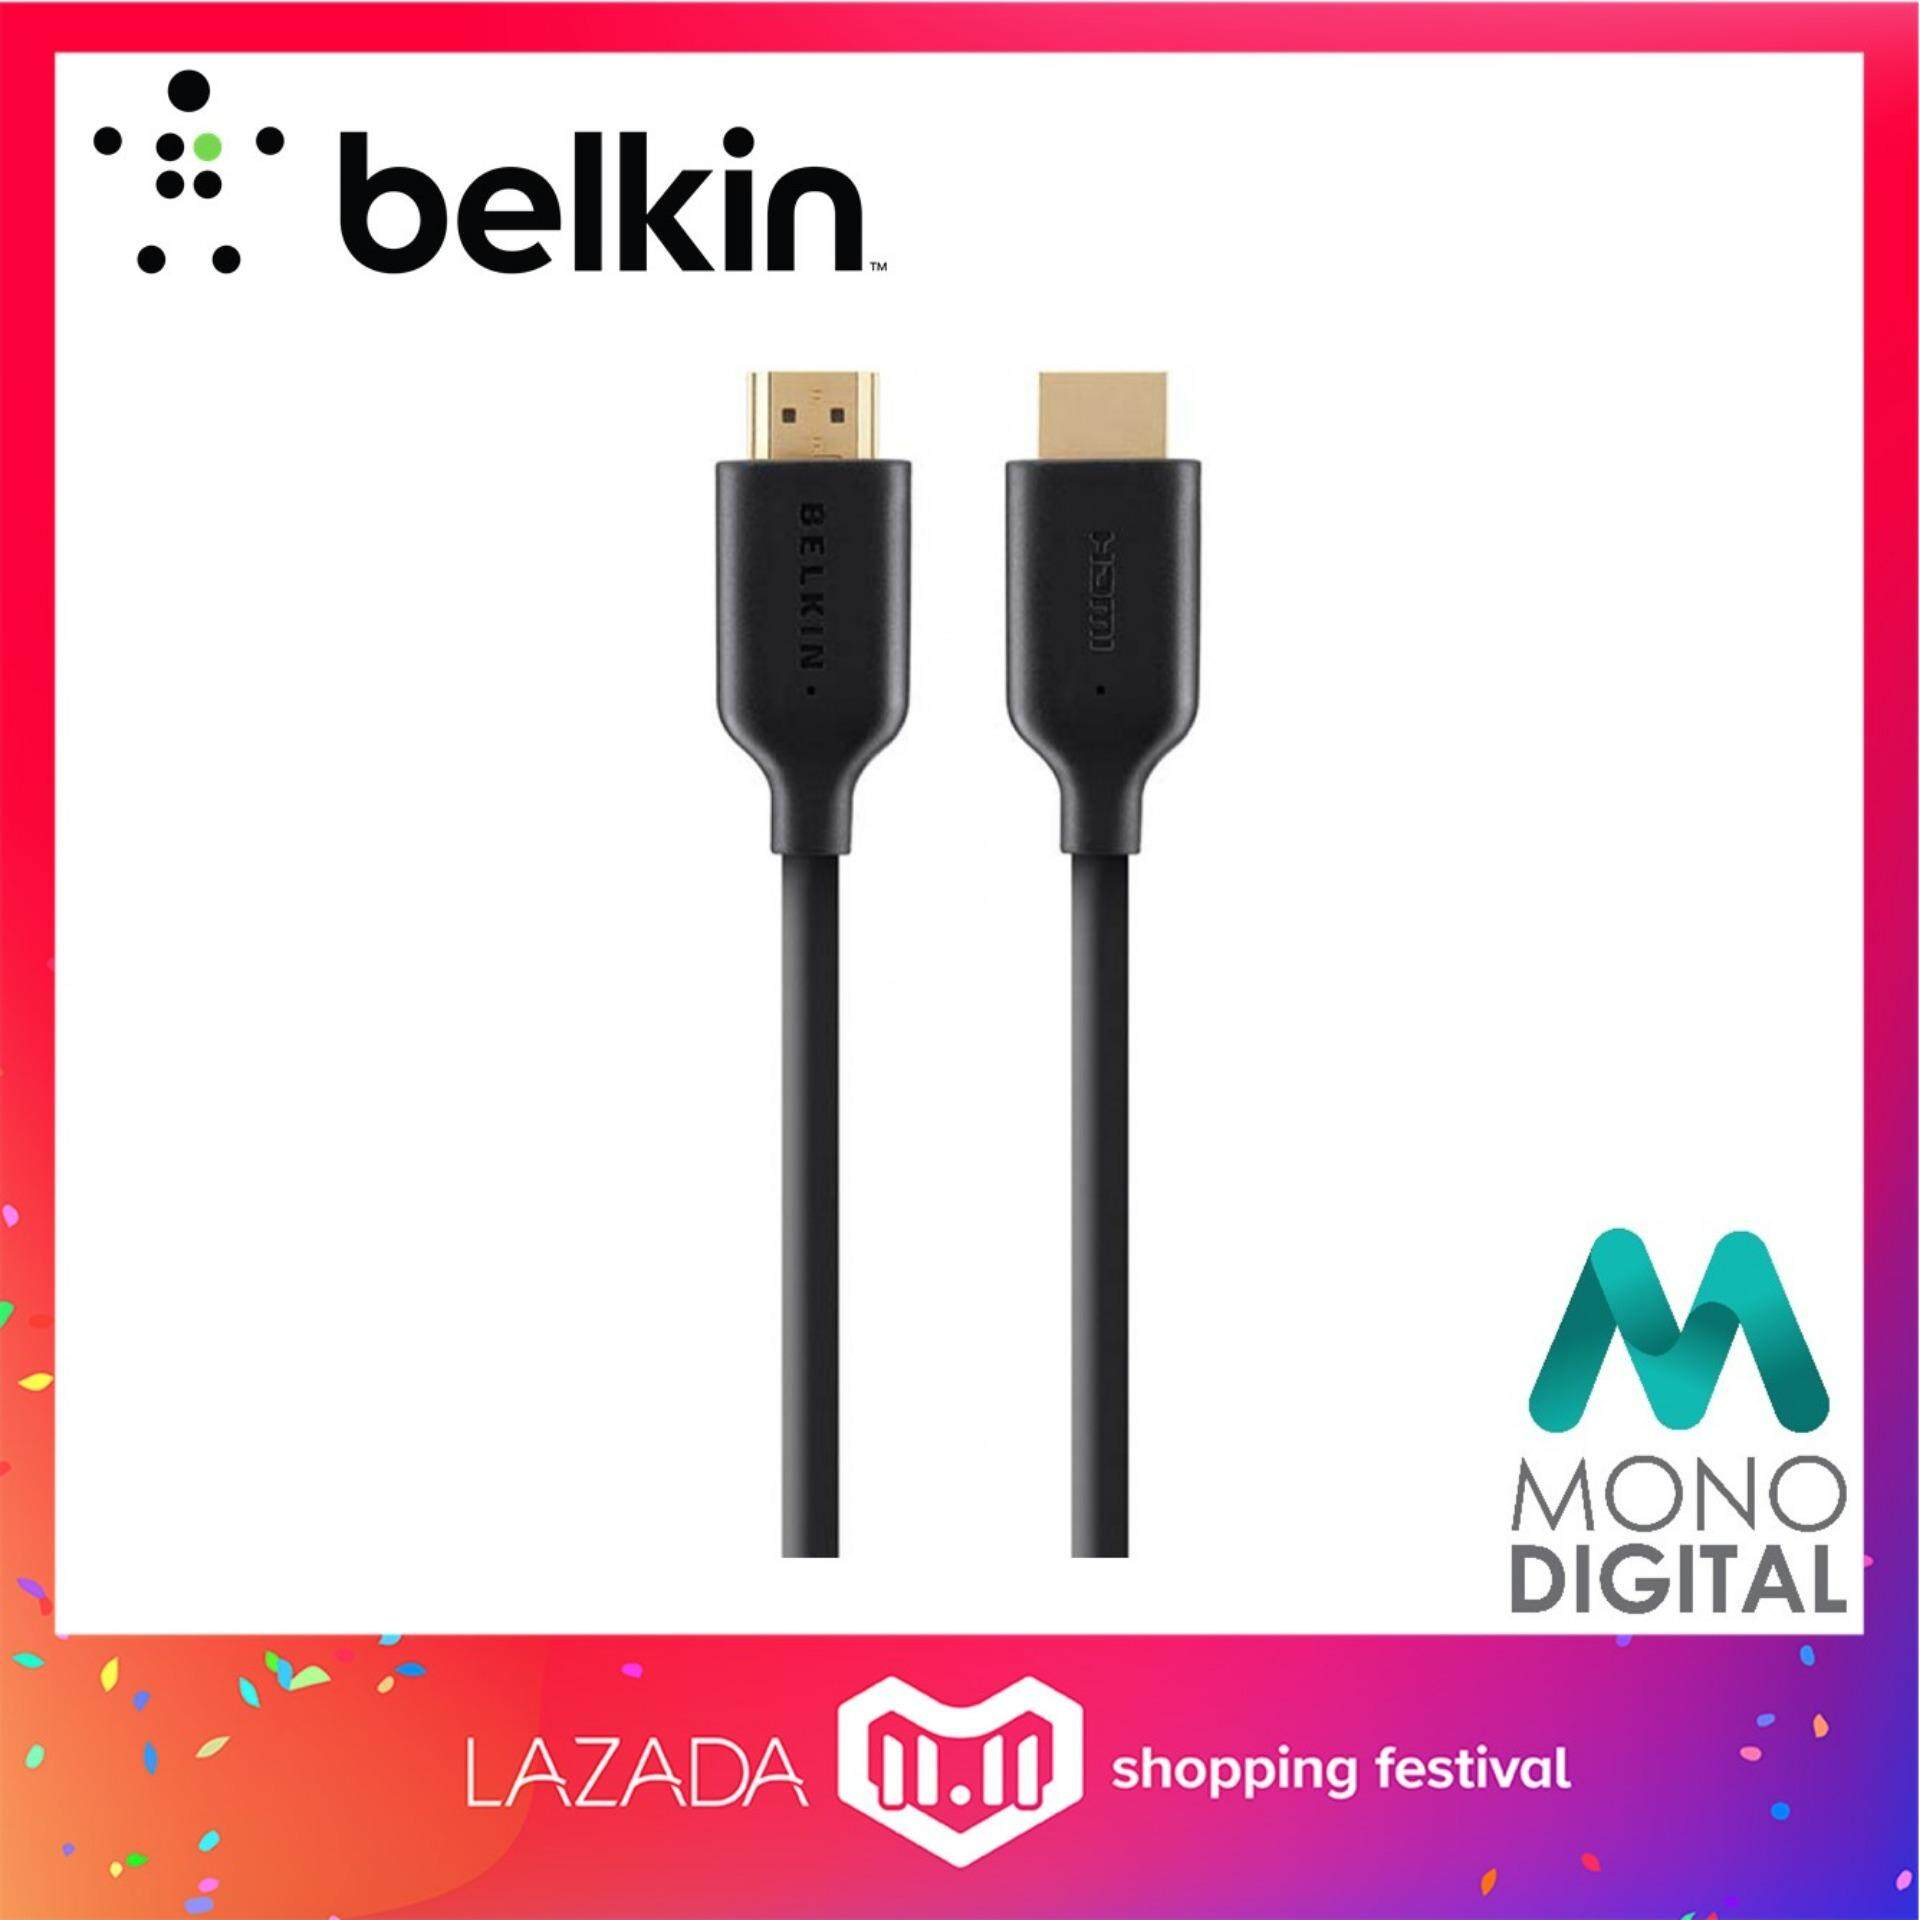 Computer Laptop Ethernet Cables For The Best Prices In Malaysia Electrical Wiring Youtube Together With Sewing Machine 2 Pin Belkin Gold Plated High Speed Hdmi Cable 1meter F3y021bt1m